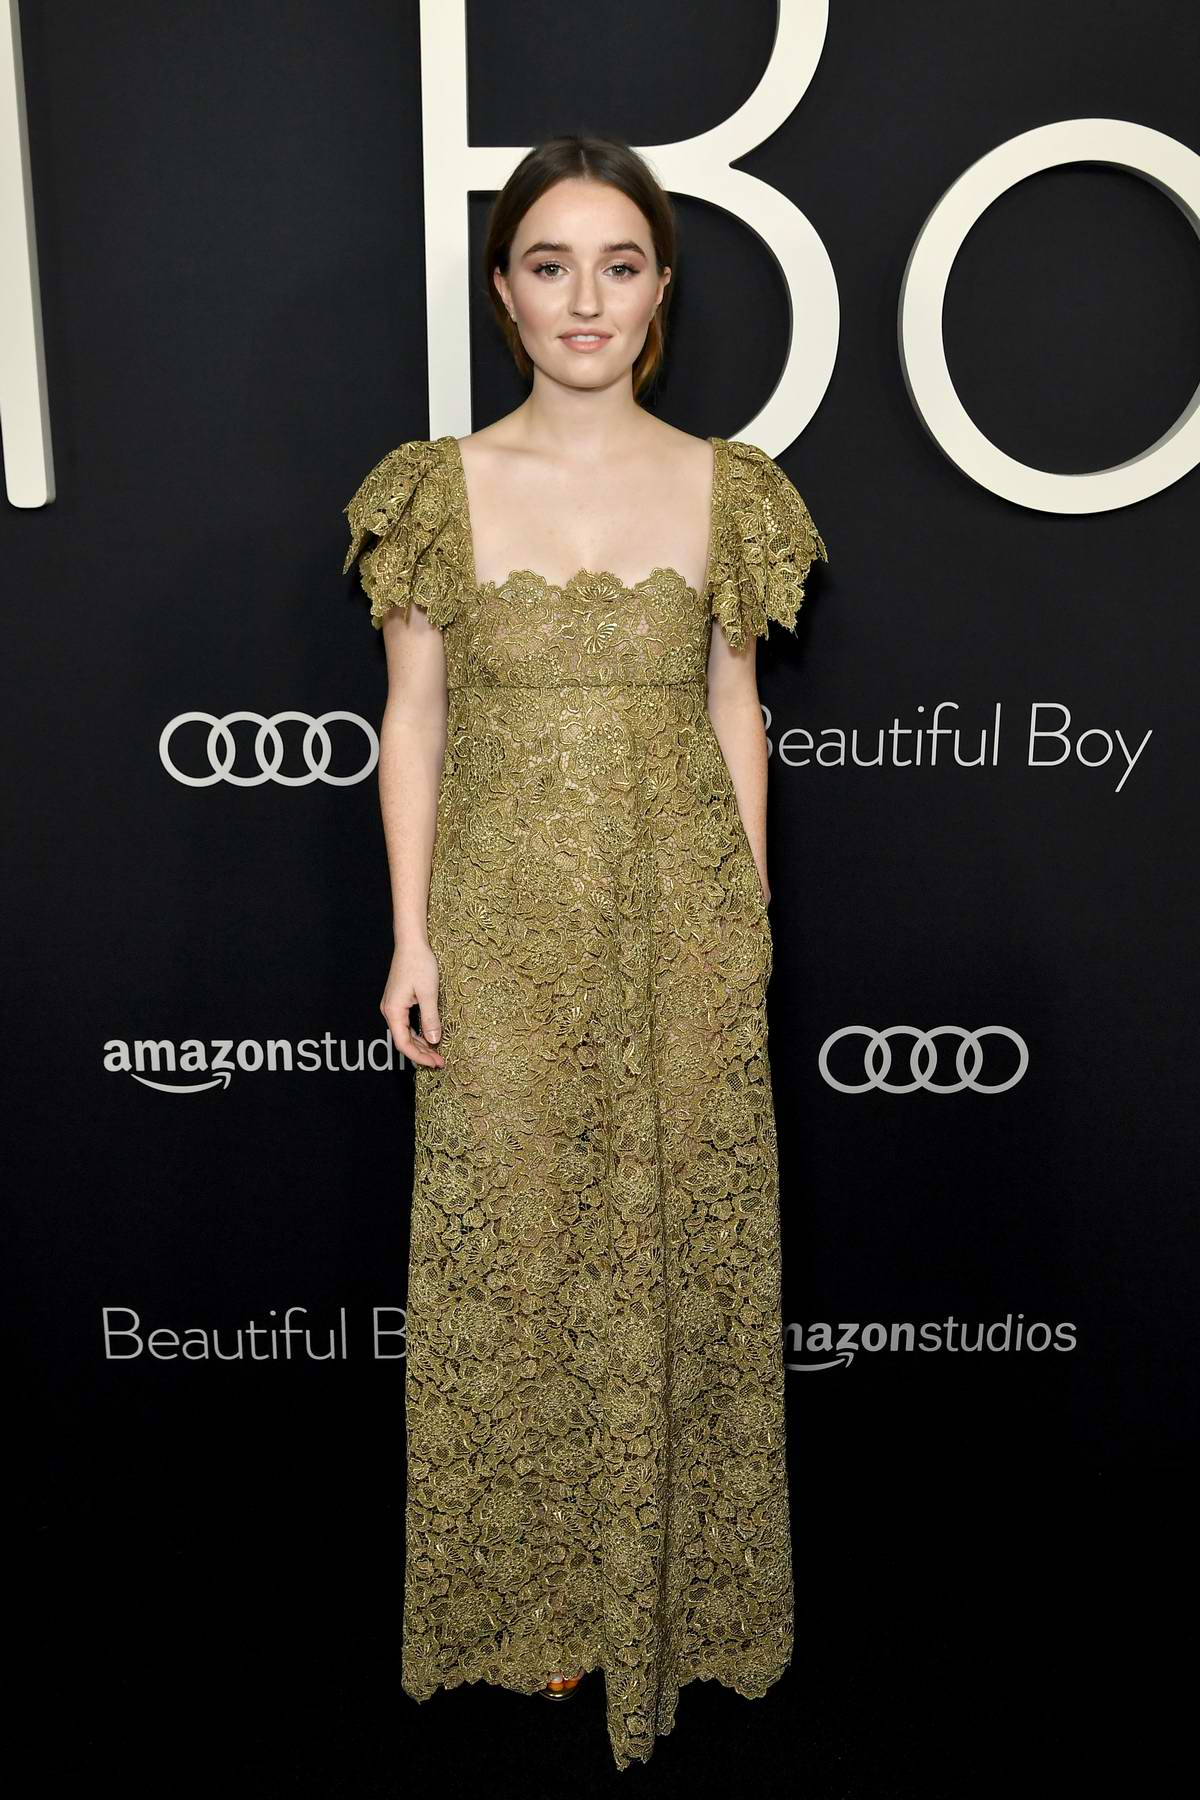 Kaitlyn Dever attends the premiere of 'Beautiful Boy' at Samuel Goldwyn Theater in Beverly Hills, Los Angeles